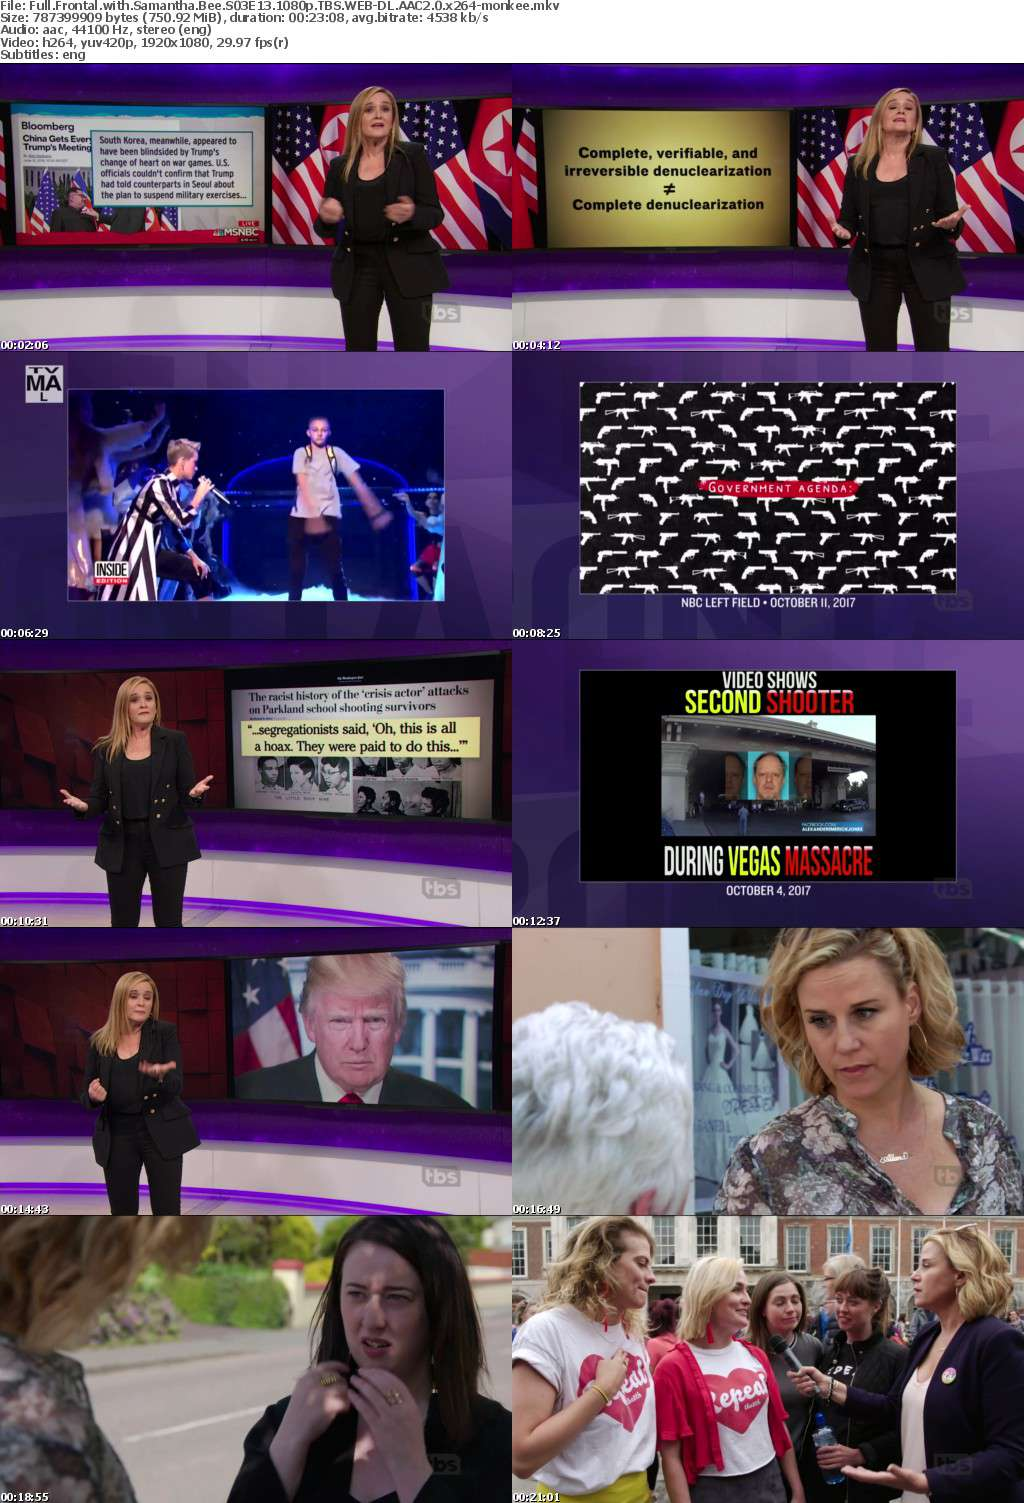 Full Frontal with Samantha Bee S03E13 1080p TBS WEB-DL AAC2 0 x264-monkee